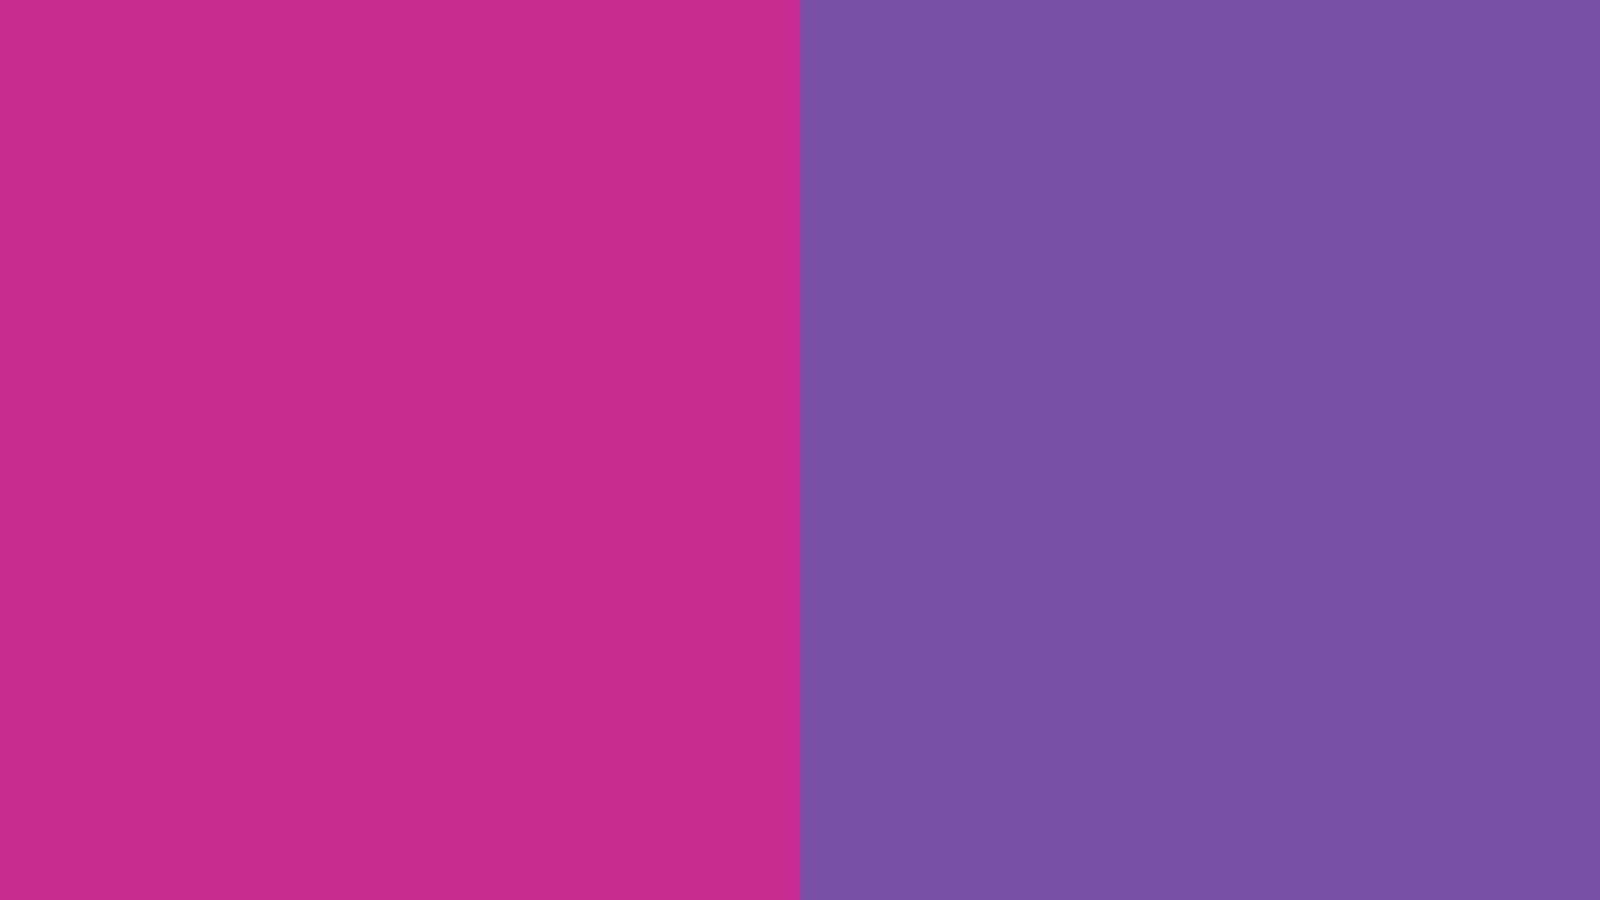 resolution Royal Fuchsia and Royal Purple solid two color background 1600x900